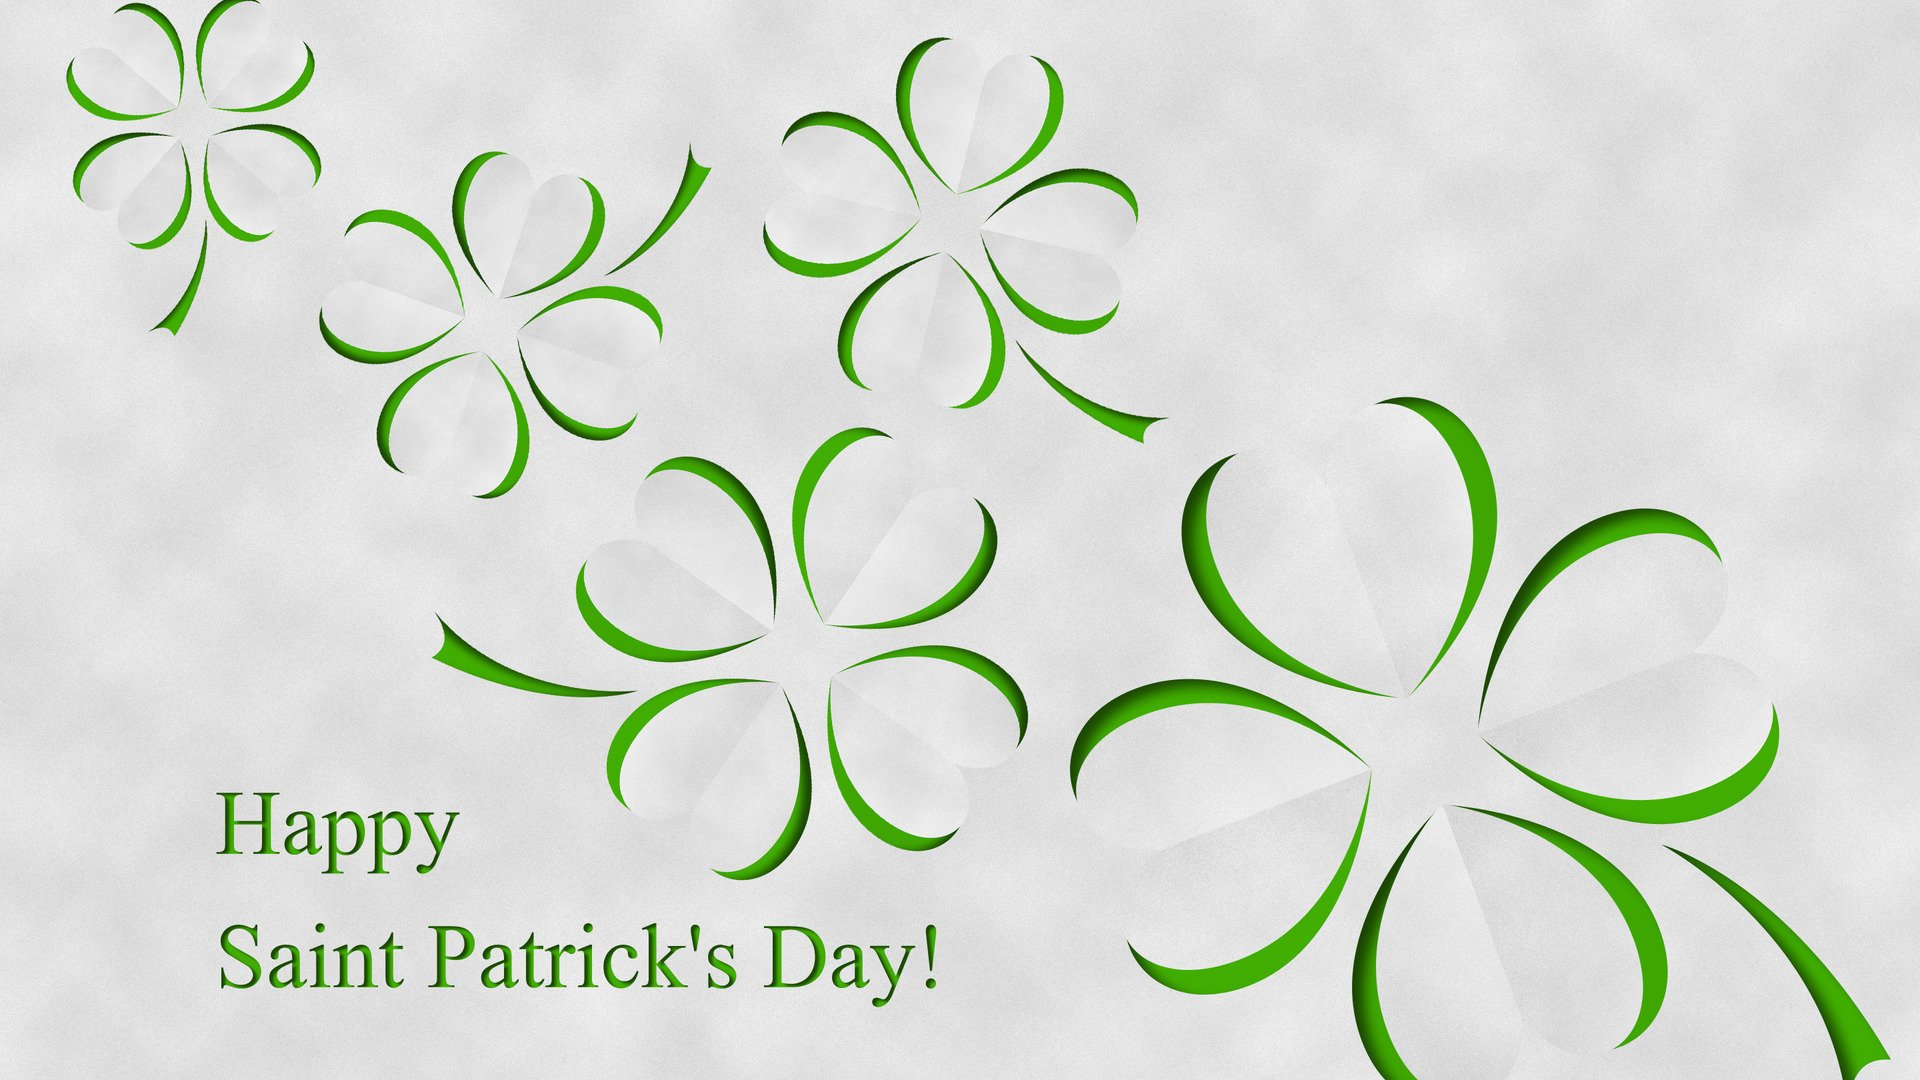 St patrick 39 s day hd wallpaper background image 1920x1080 id 497323 wallpaper abyss - Saint patricks day wallpaper free ...